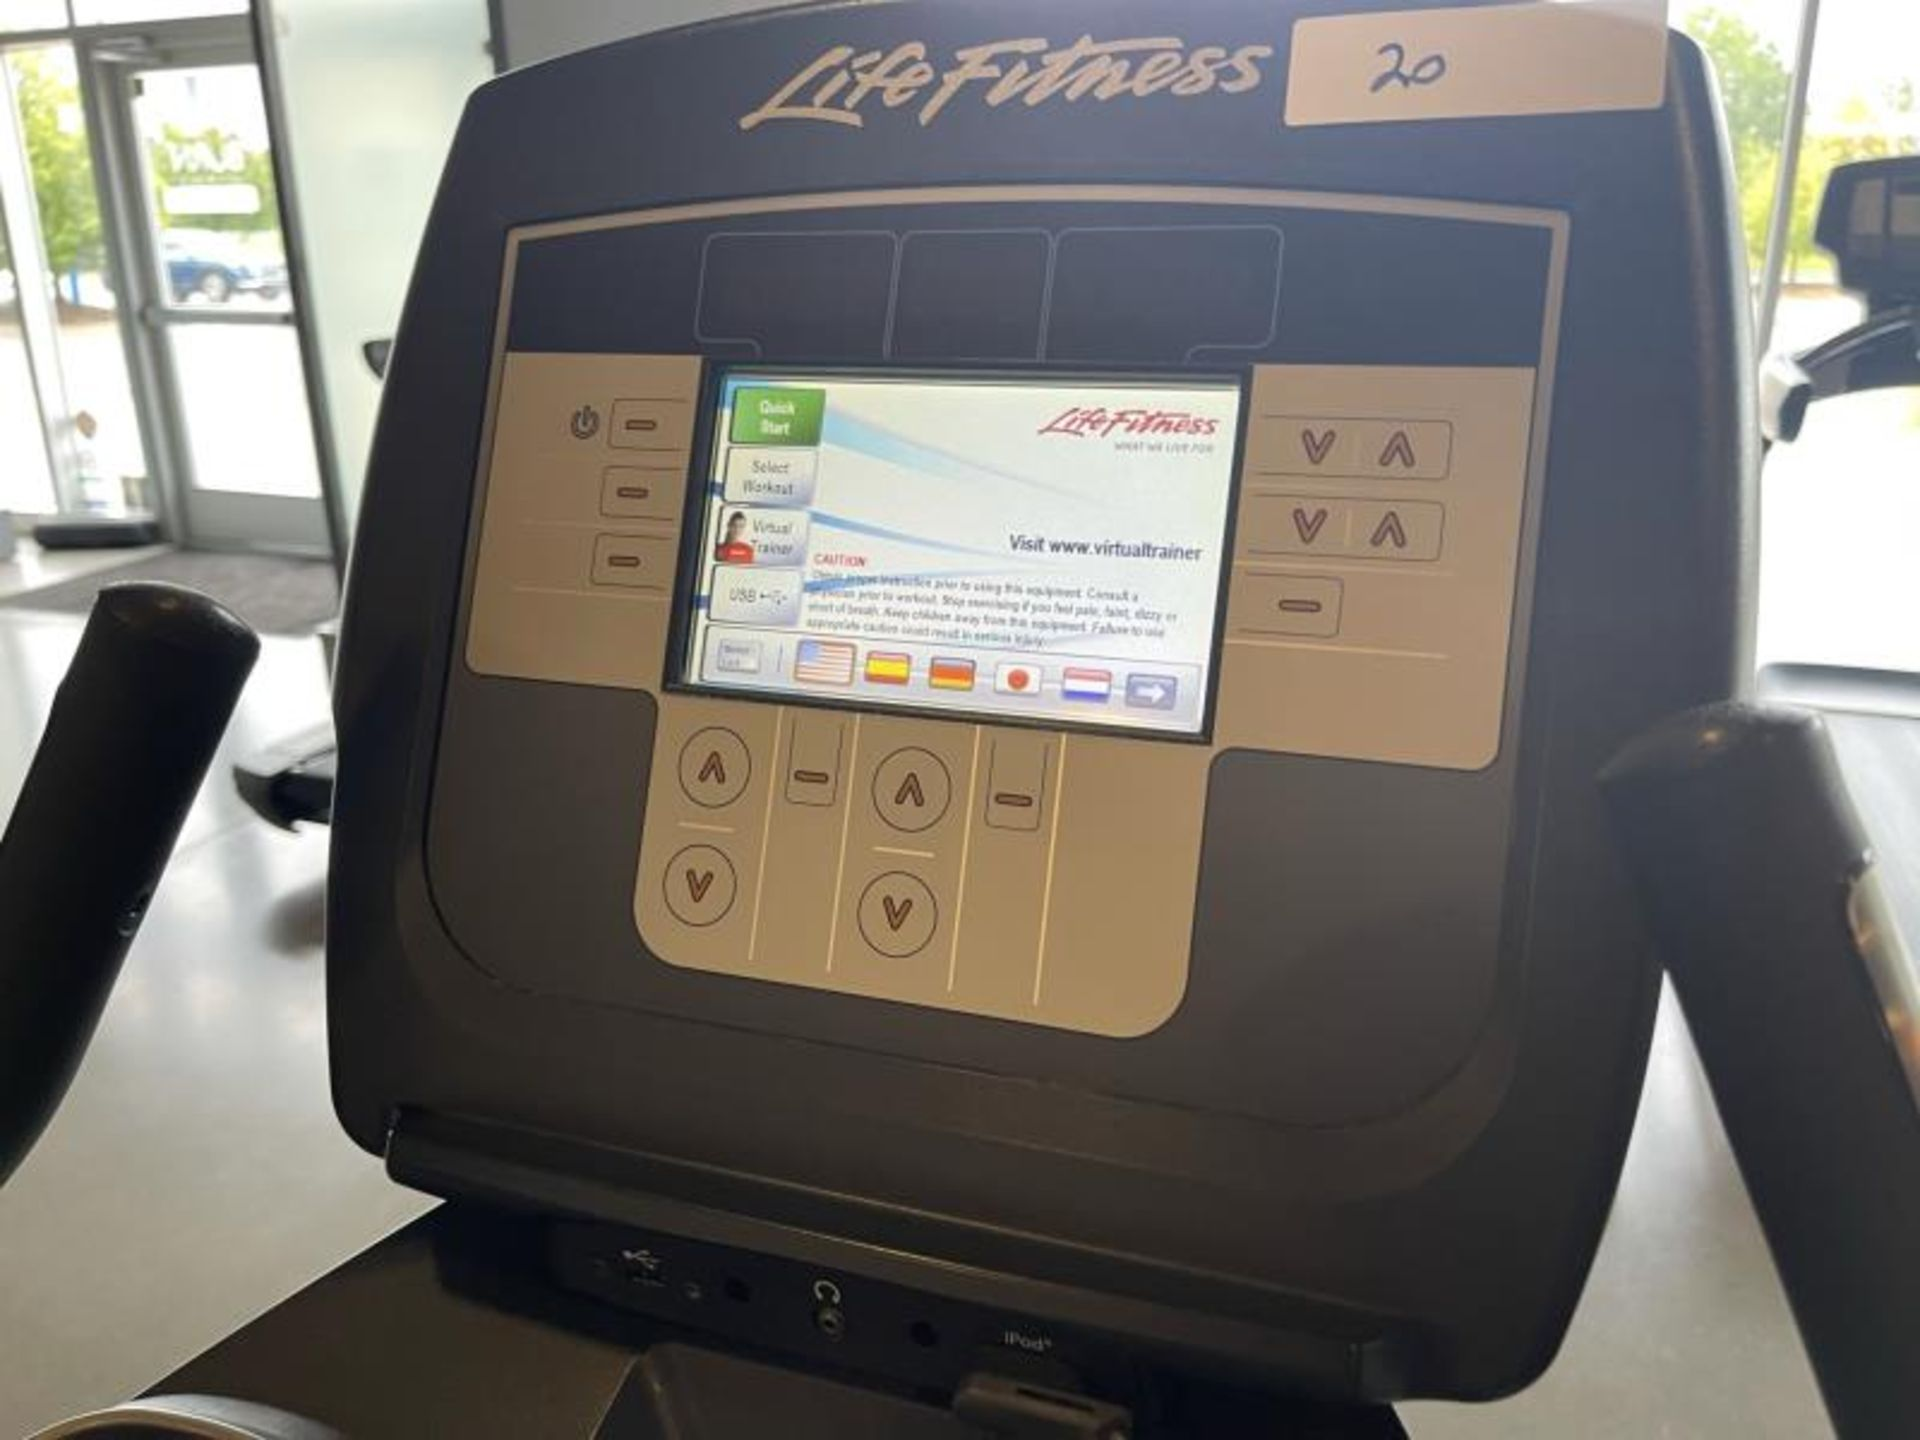 Life Fitness Exercise Bike M: 95CLifecycle, SN: CLV102815 - Image 5 of 5